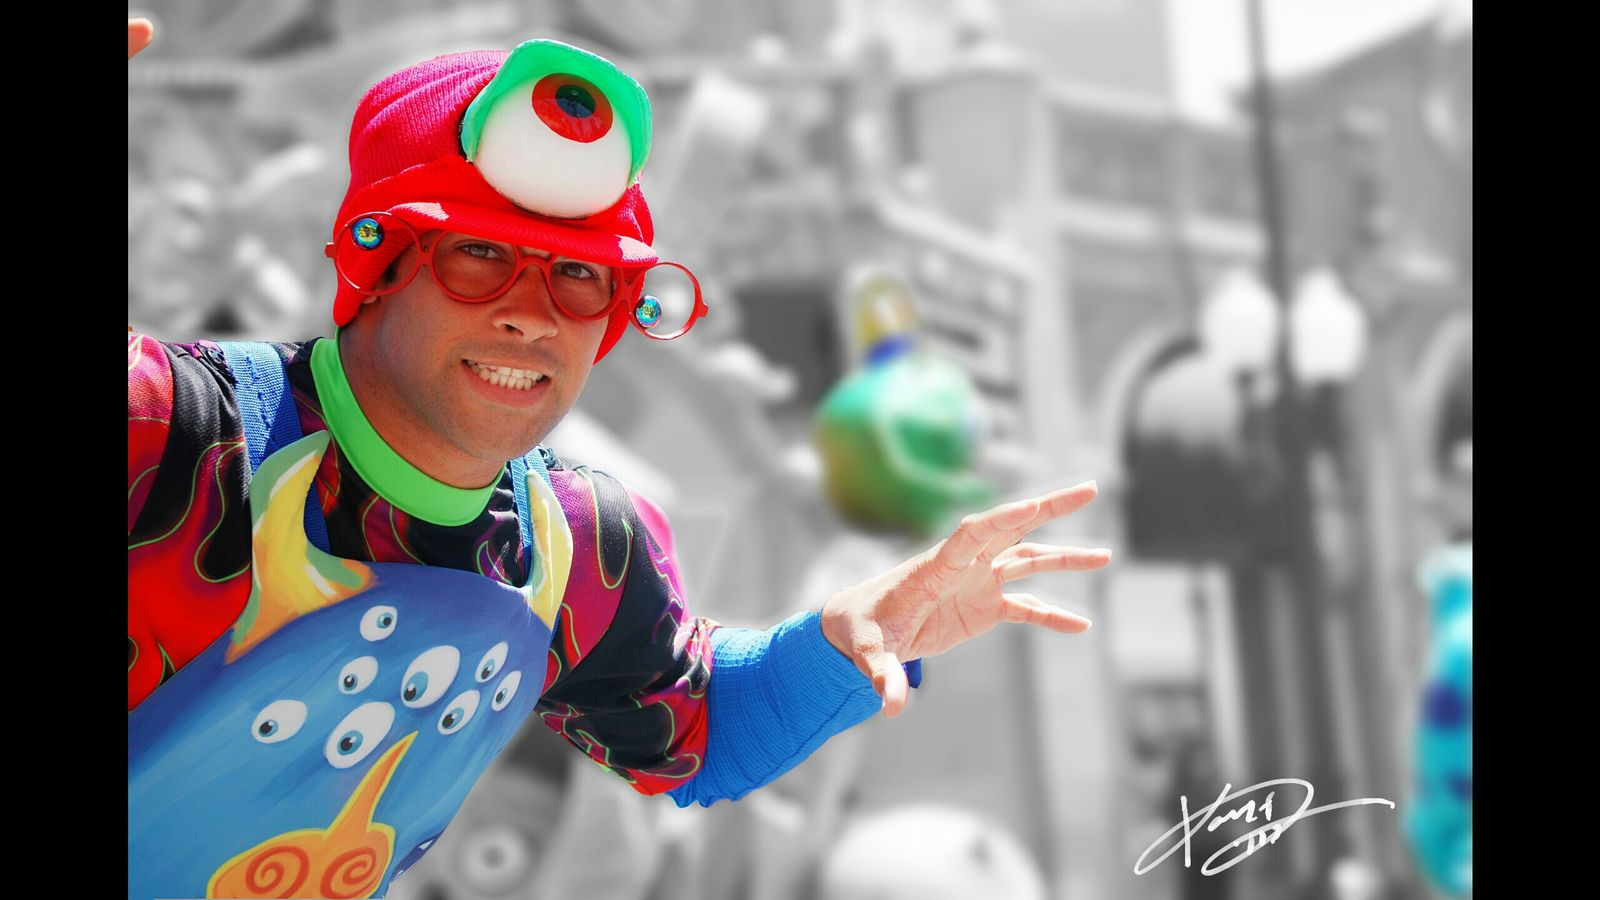 Multi Colored Vibrant Color Selective Focus Simplebutbeautiful Through My Eyes Through My Lens Simple Photography EyeEm Best Shots My Point Of View EyeEmBestPics The Week Of Eye Em EyeEm Gallery Throughmyeyes Day Outdoor Outdoor Photography Outdoors Themepark Theme Park Entertainment Show Monsters Monster